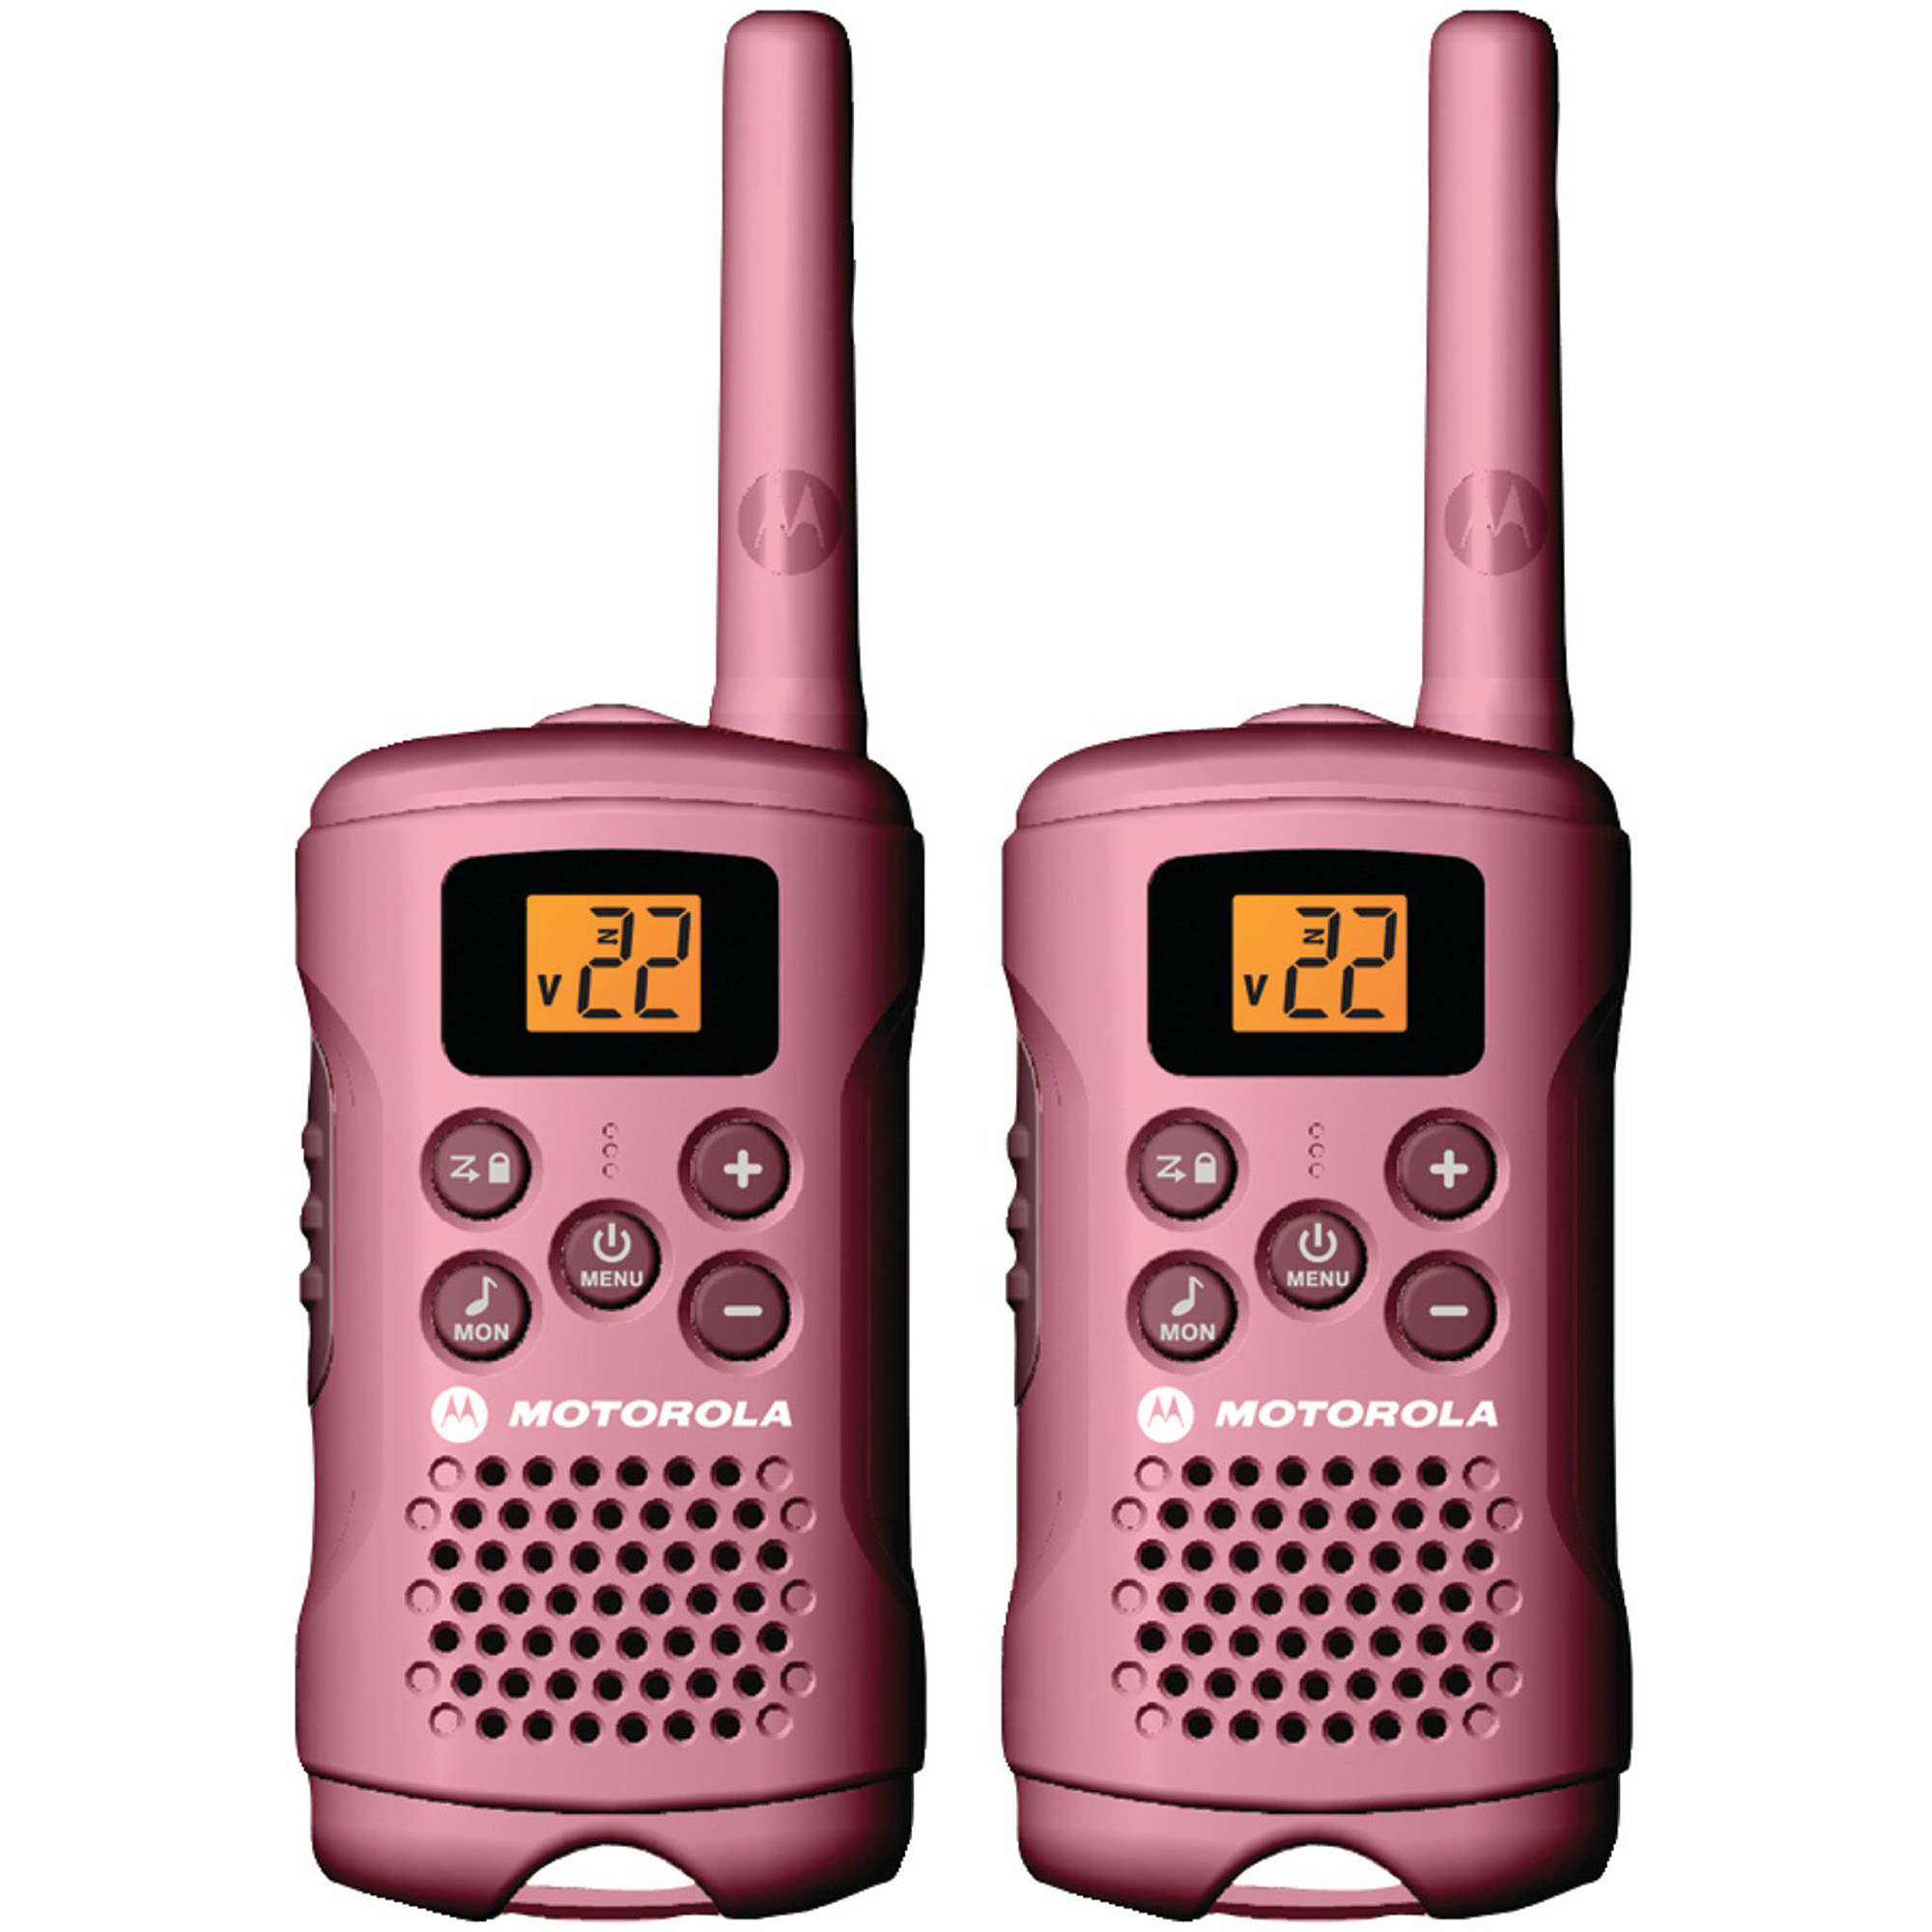 Motorola MG167A -16 Mile Talkabout 2-Way Radios (Pink), PAIR